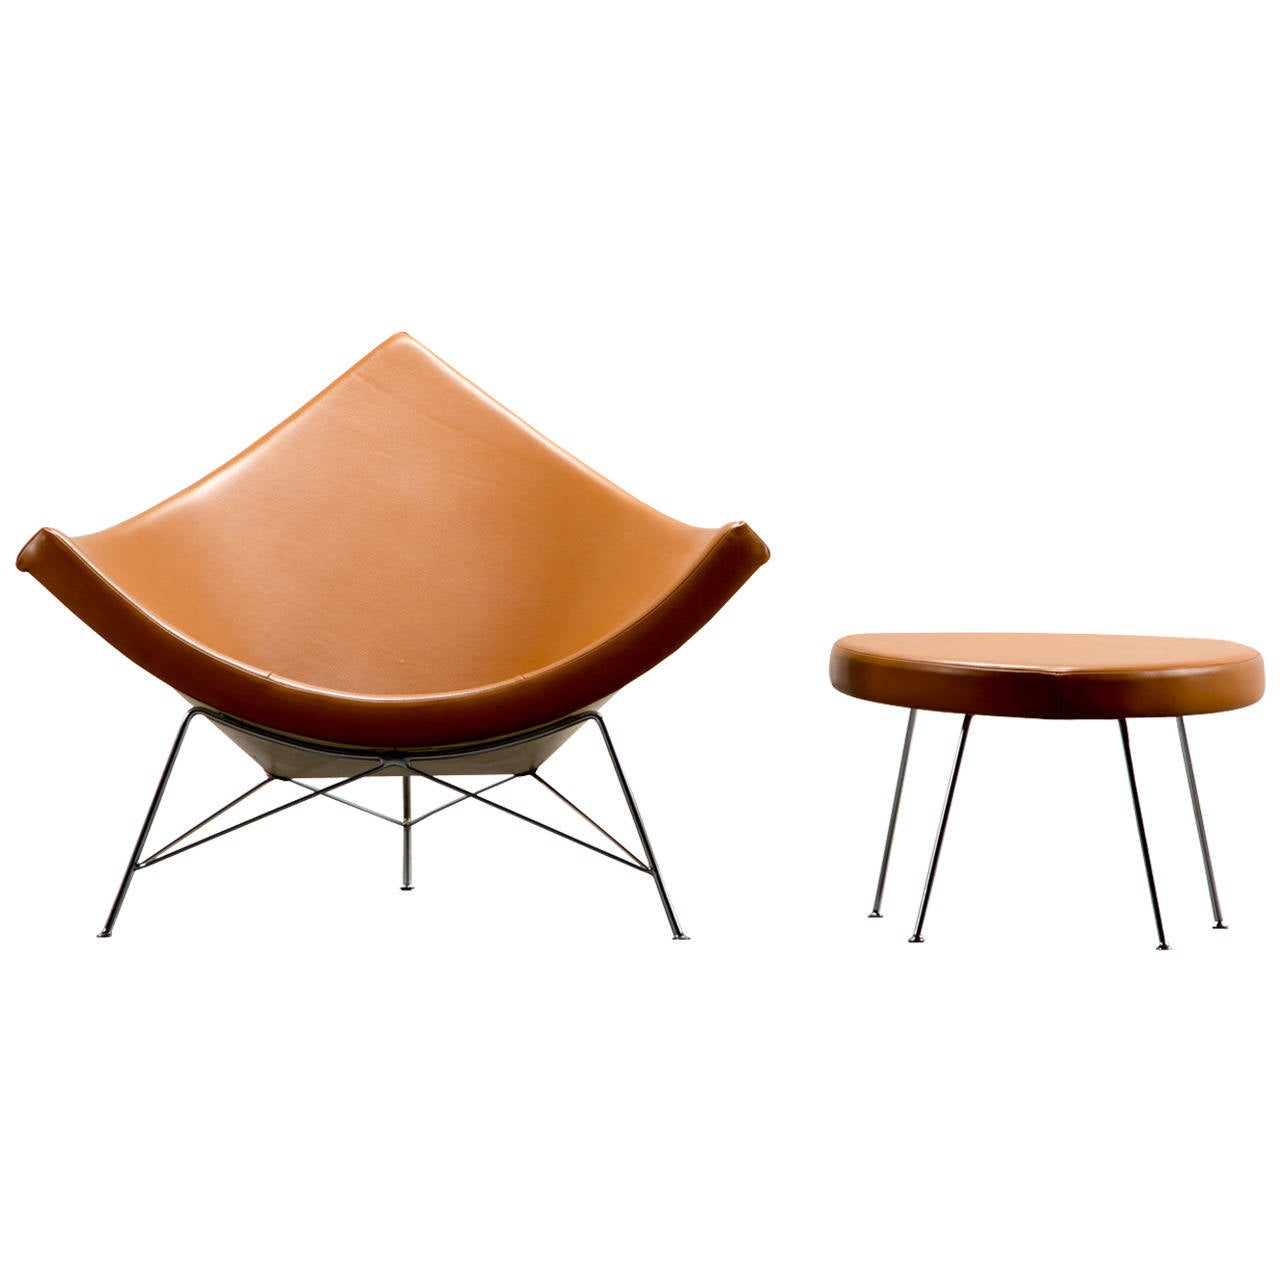 Muebles George Nelson - Coconut Chair And Ottoman By George Nelson 1955 Brown Suede For [mjhdah]http://ranchoavellanas.com/wp-content/uploads/2018/02/sensational-design-george-nelson-furniture-coconut-chair-hivemodern-com.jpg